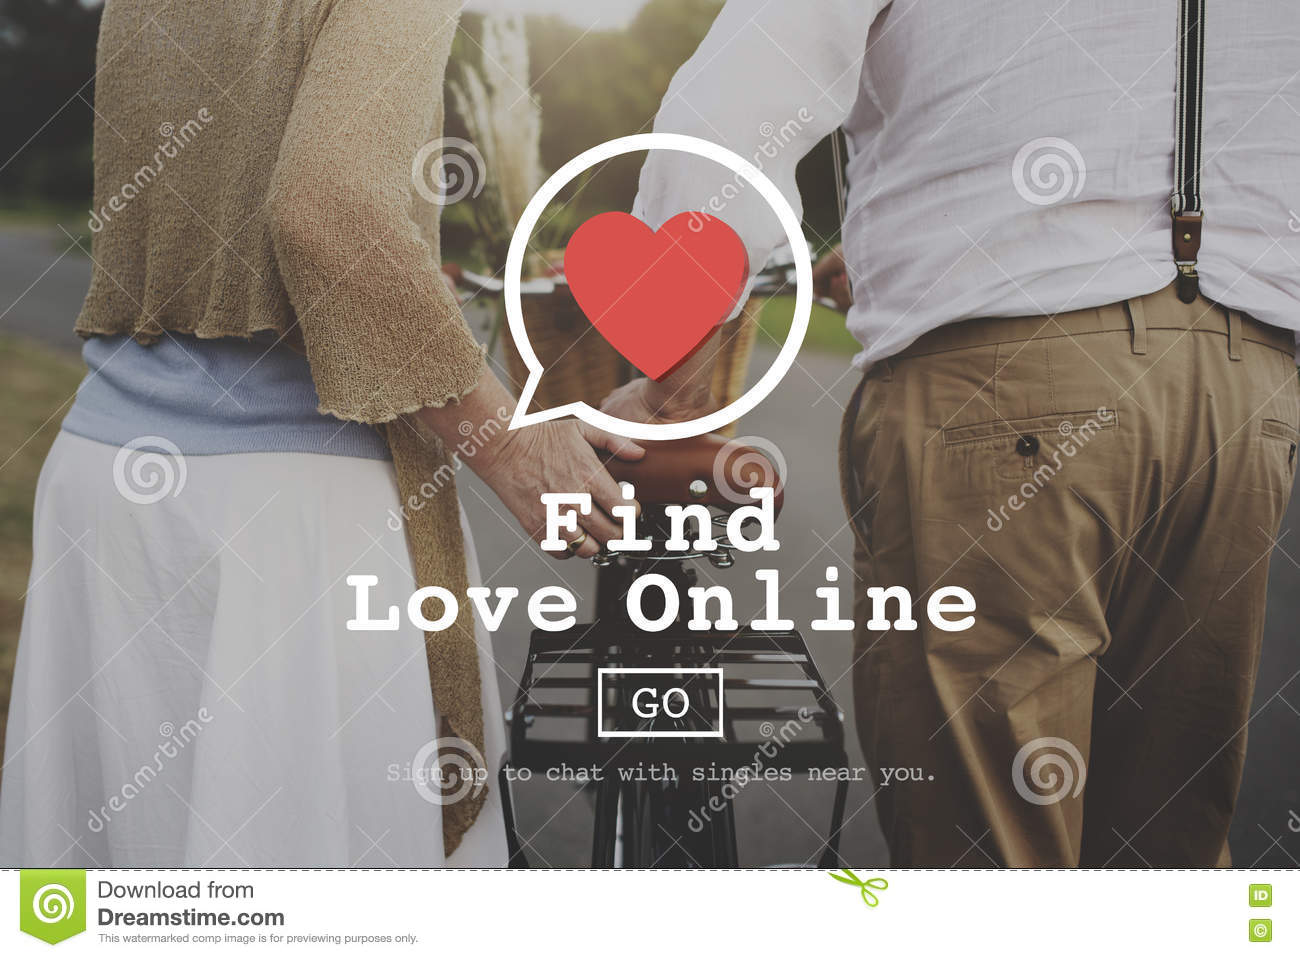 find love online free dating sites Datehookup is a 100% free online dating site unlike other online dating sites chat for hours with new single women and men without paying for a subscription.